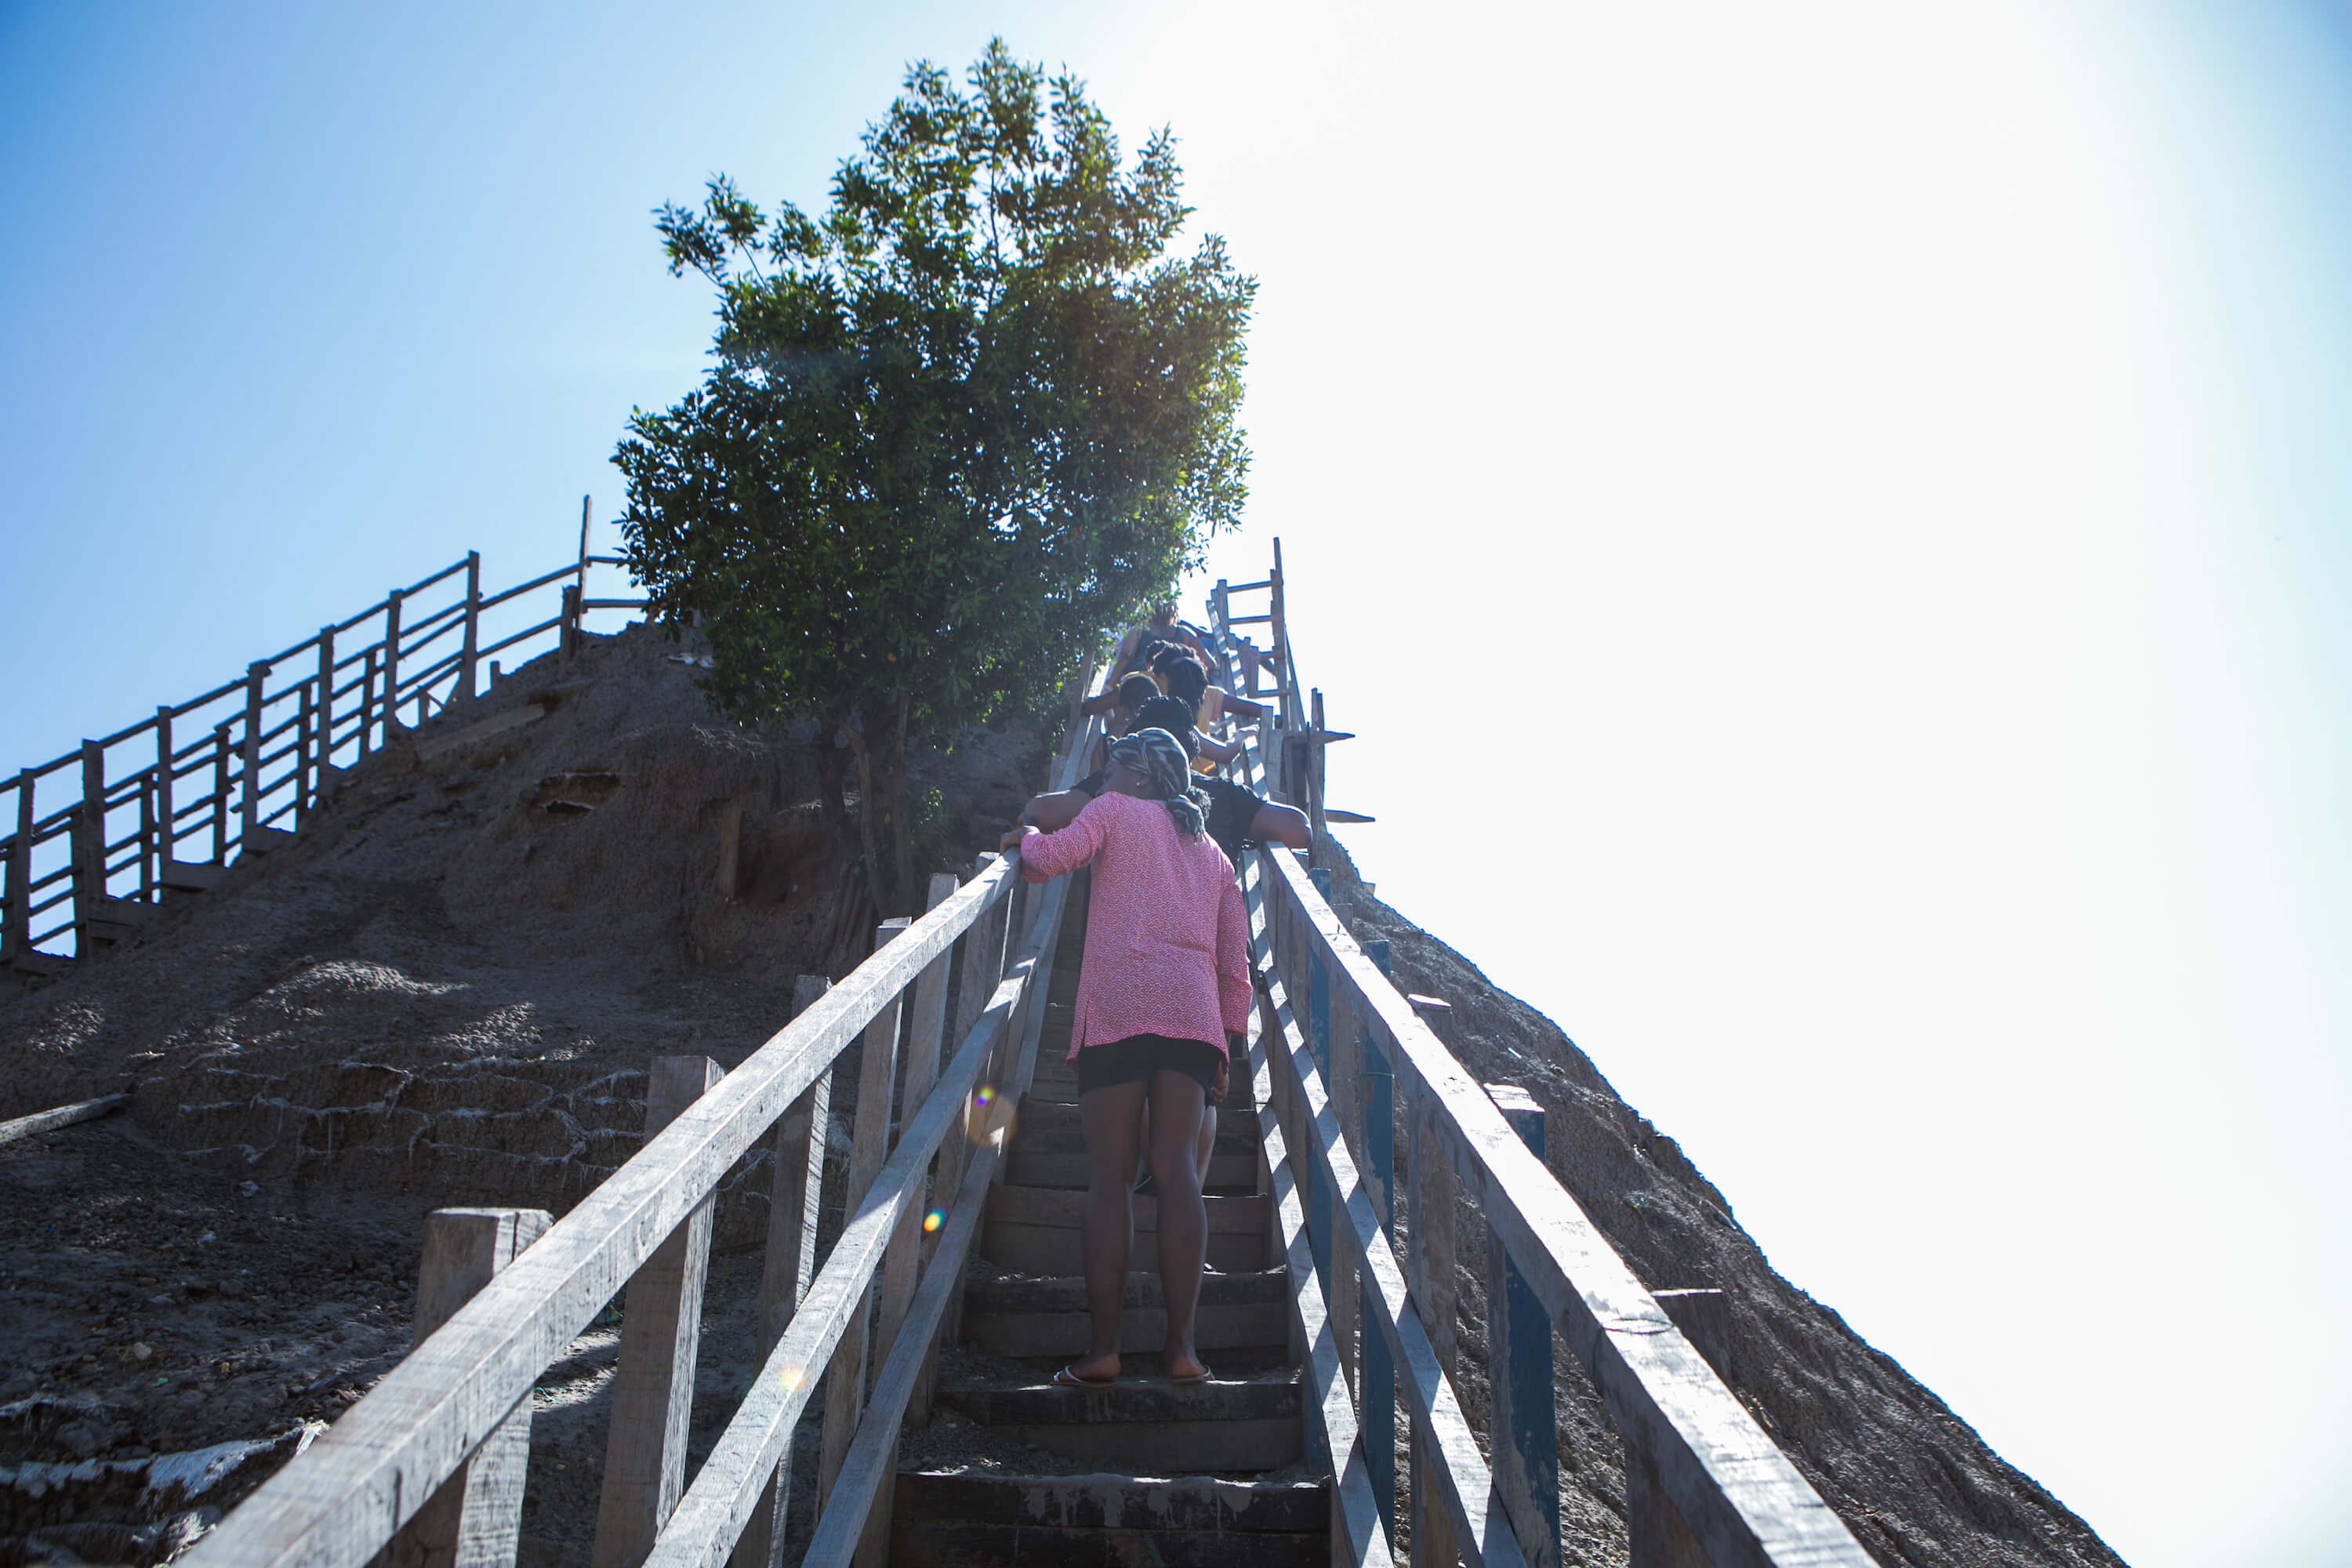 El Totumo Mud Volcano - Stairs of death